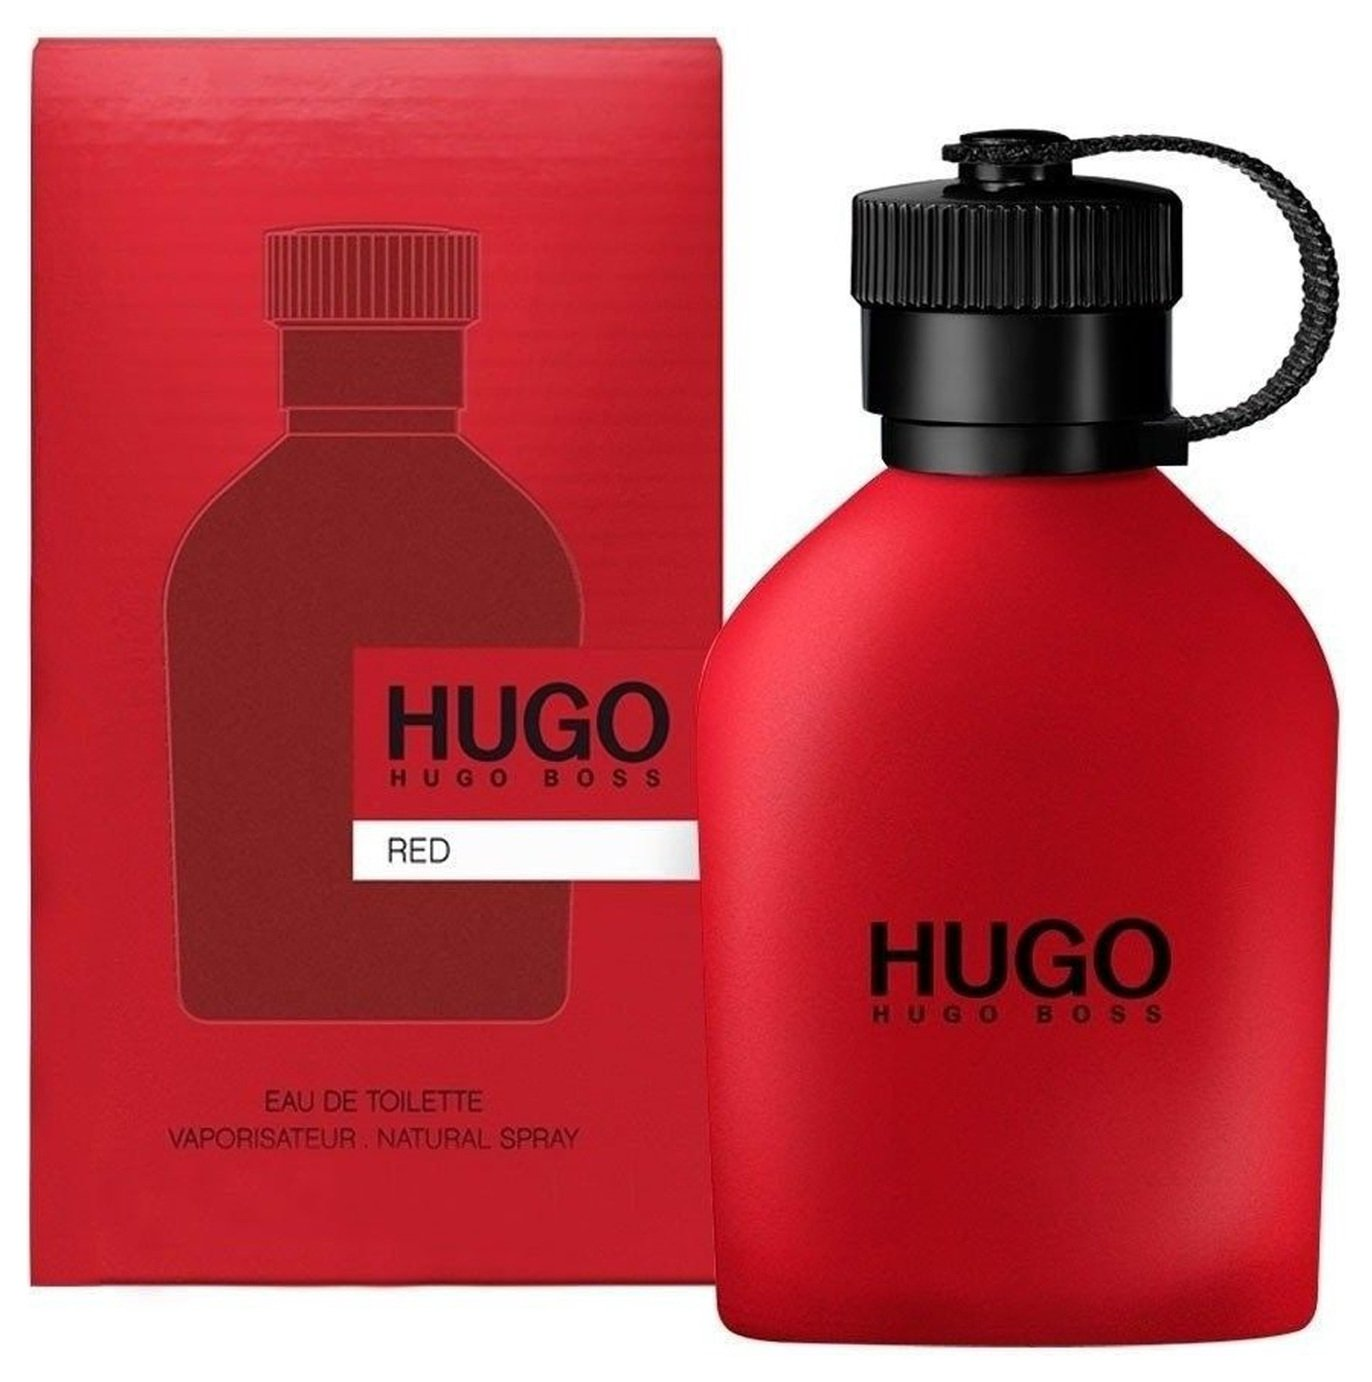 hugo boss new collection